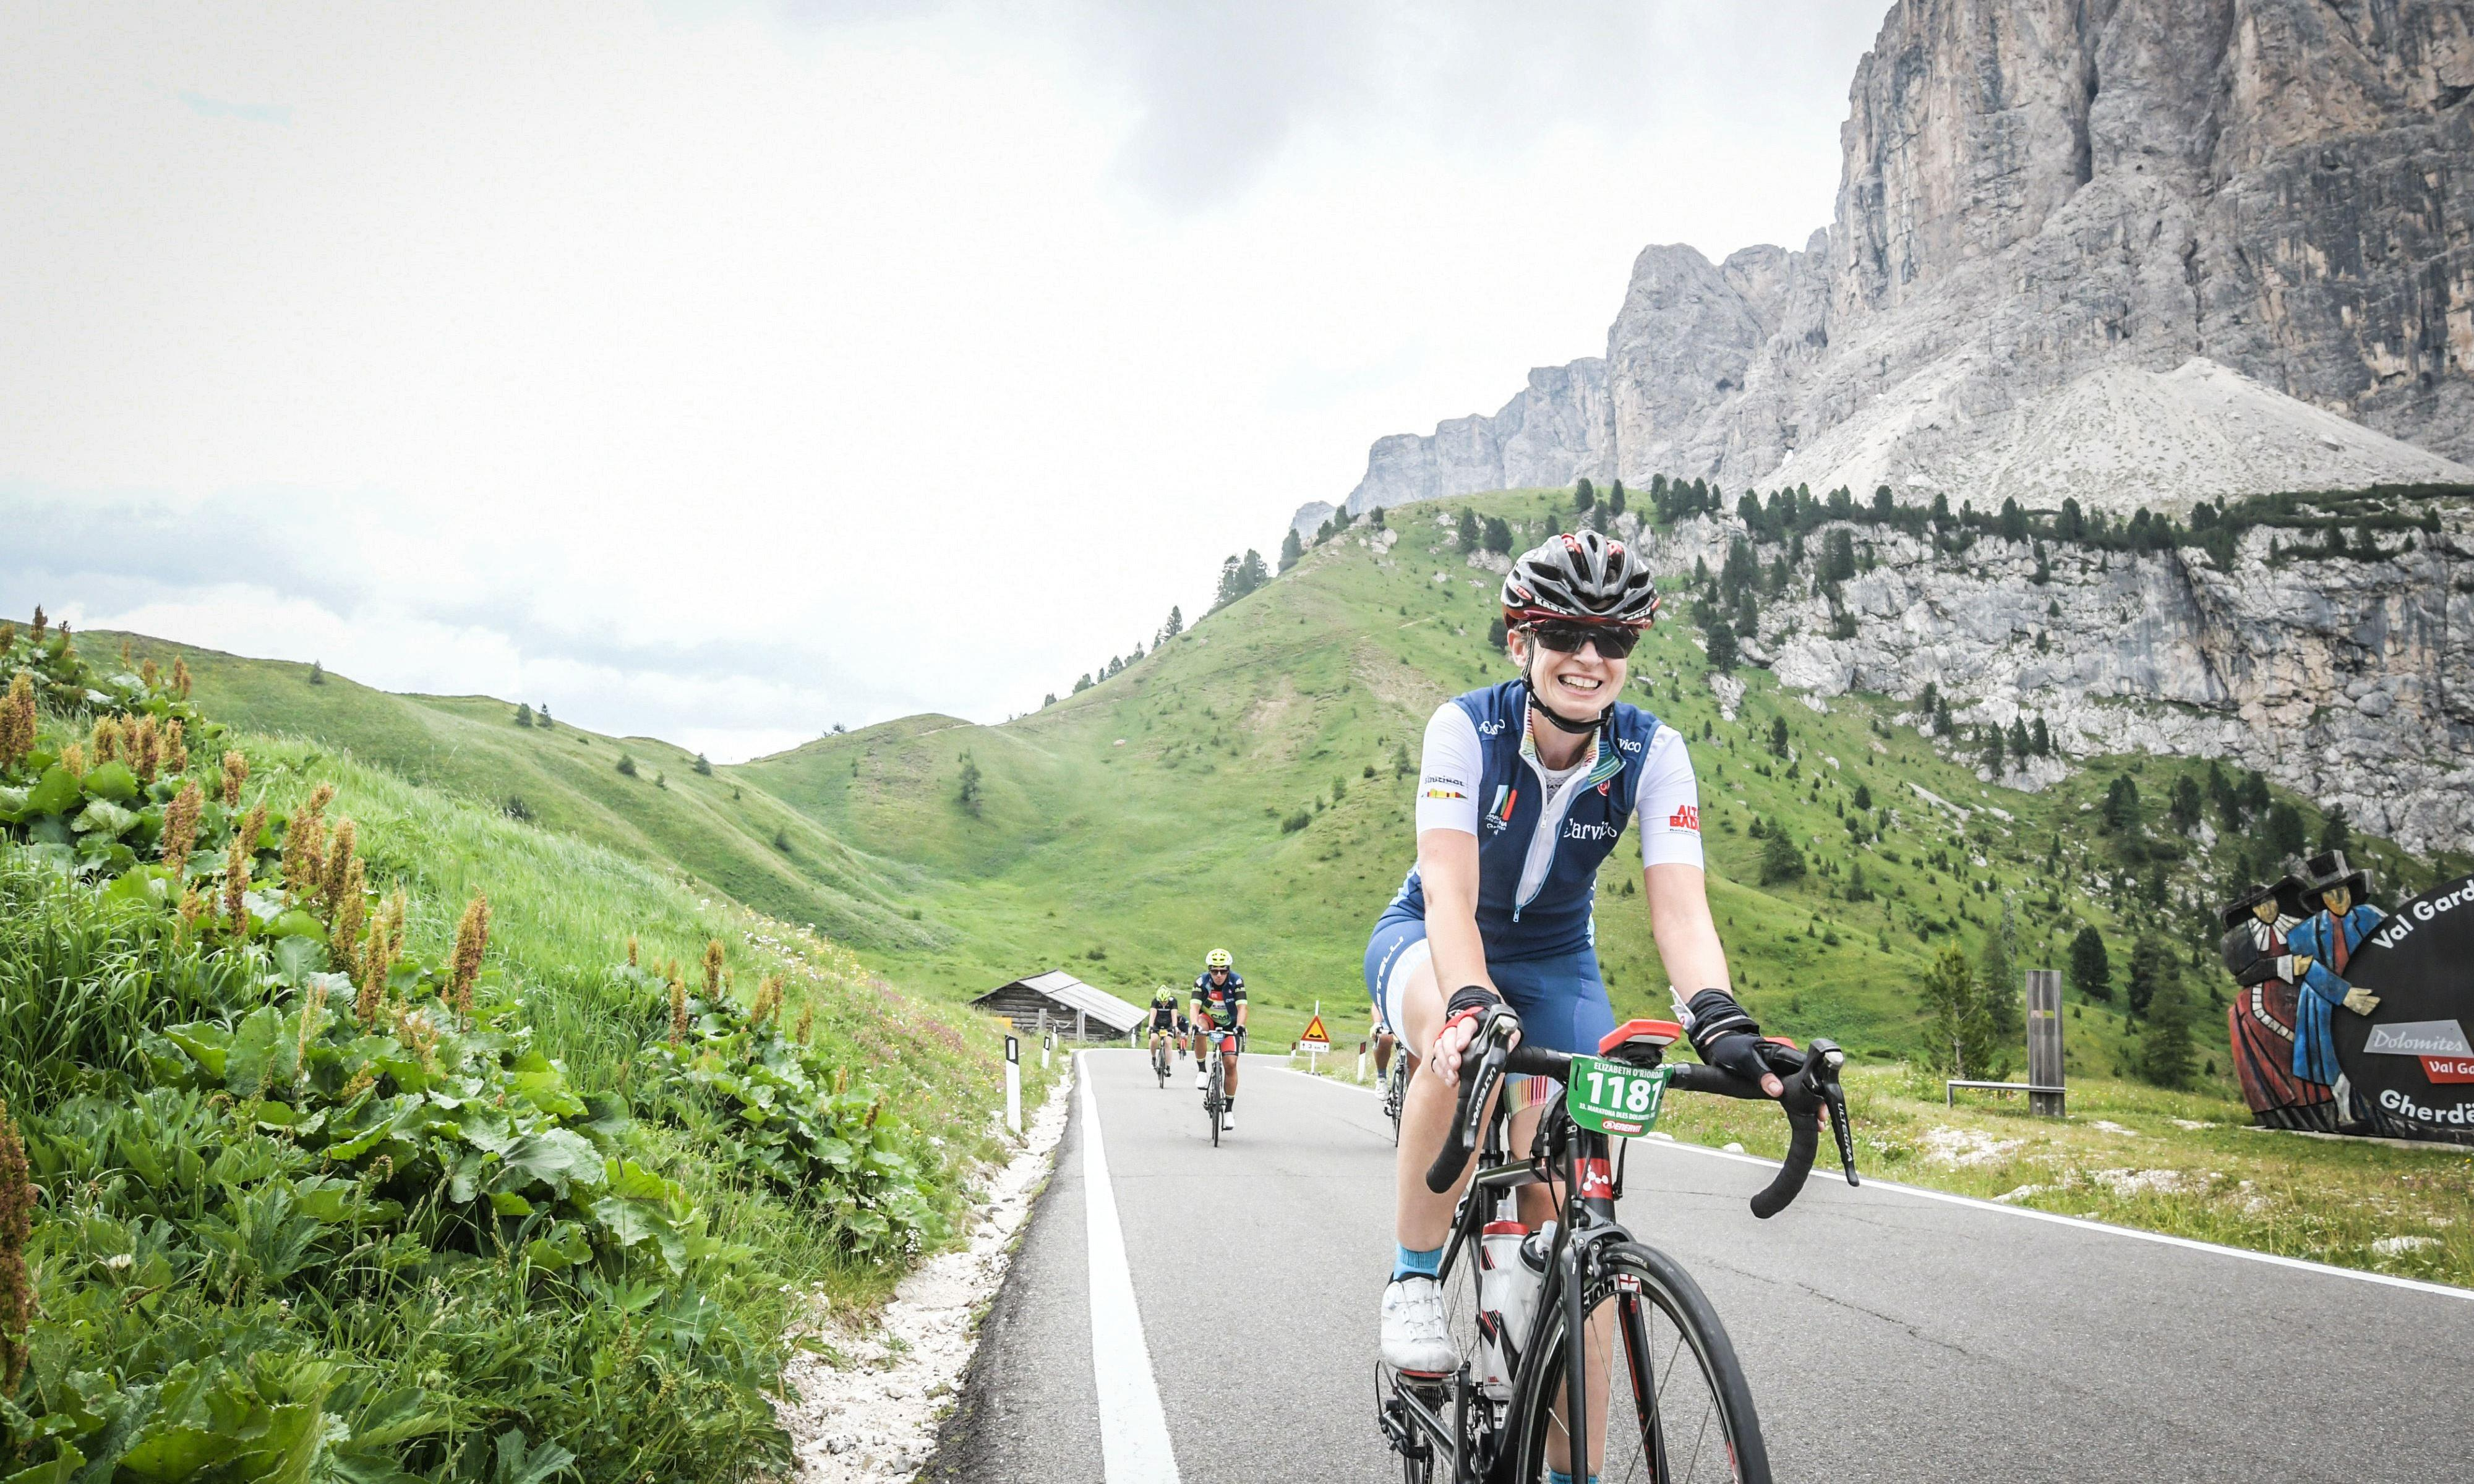 Why we're tackling the Etape du Tour despite our breast cancer